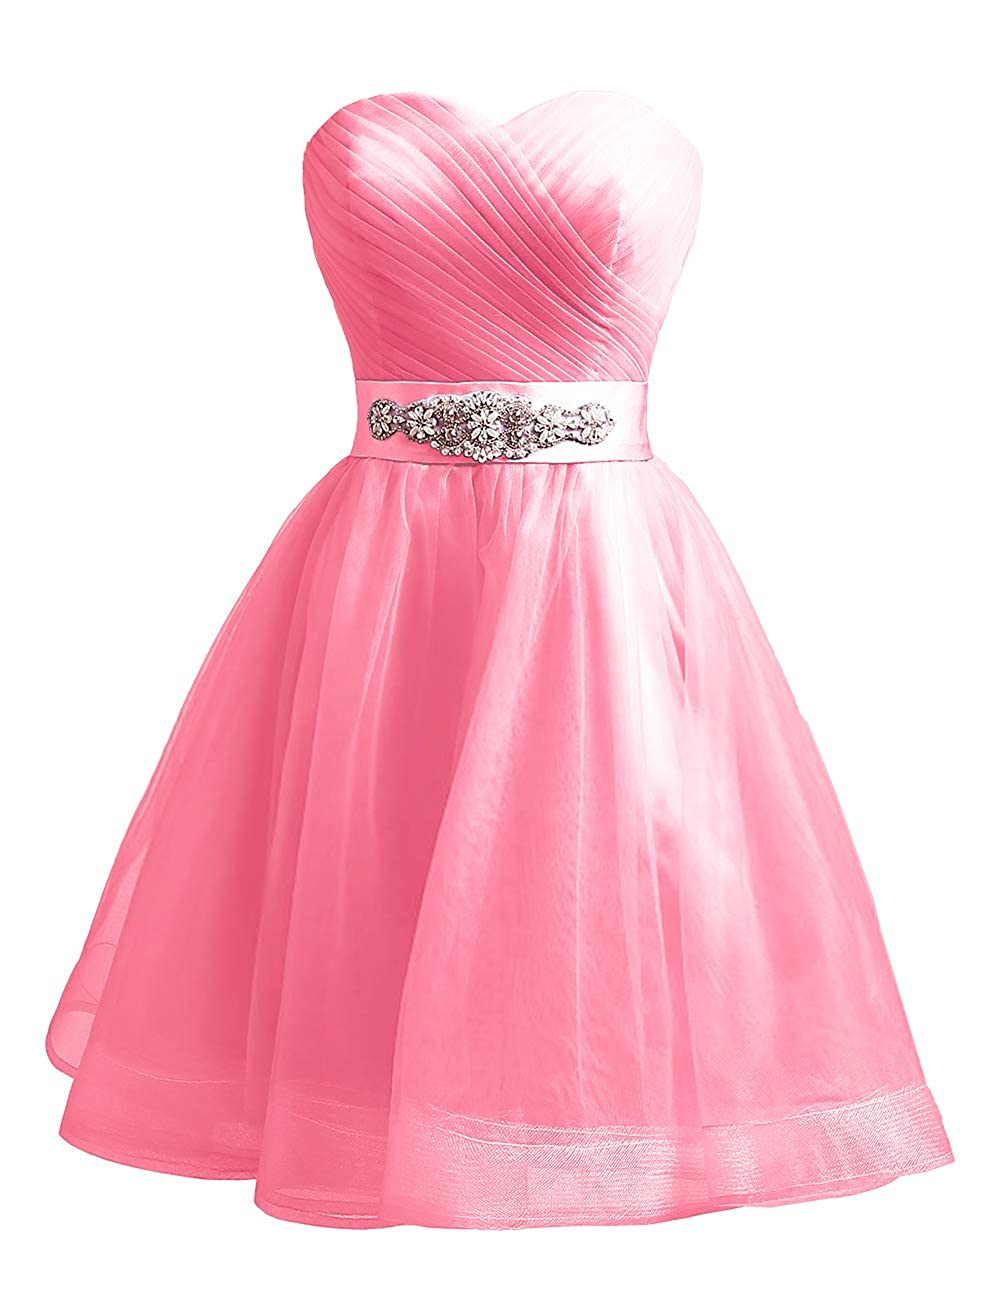 Deep Pink Uther Sweetheart Beaded ALine Homecoming Dress Short Cocktail Dress Tulle Porm Gown